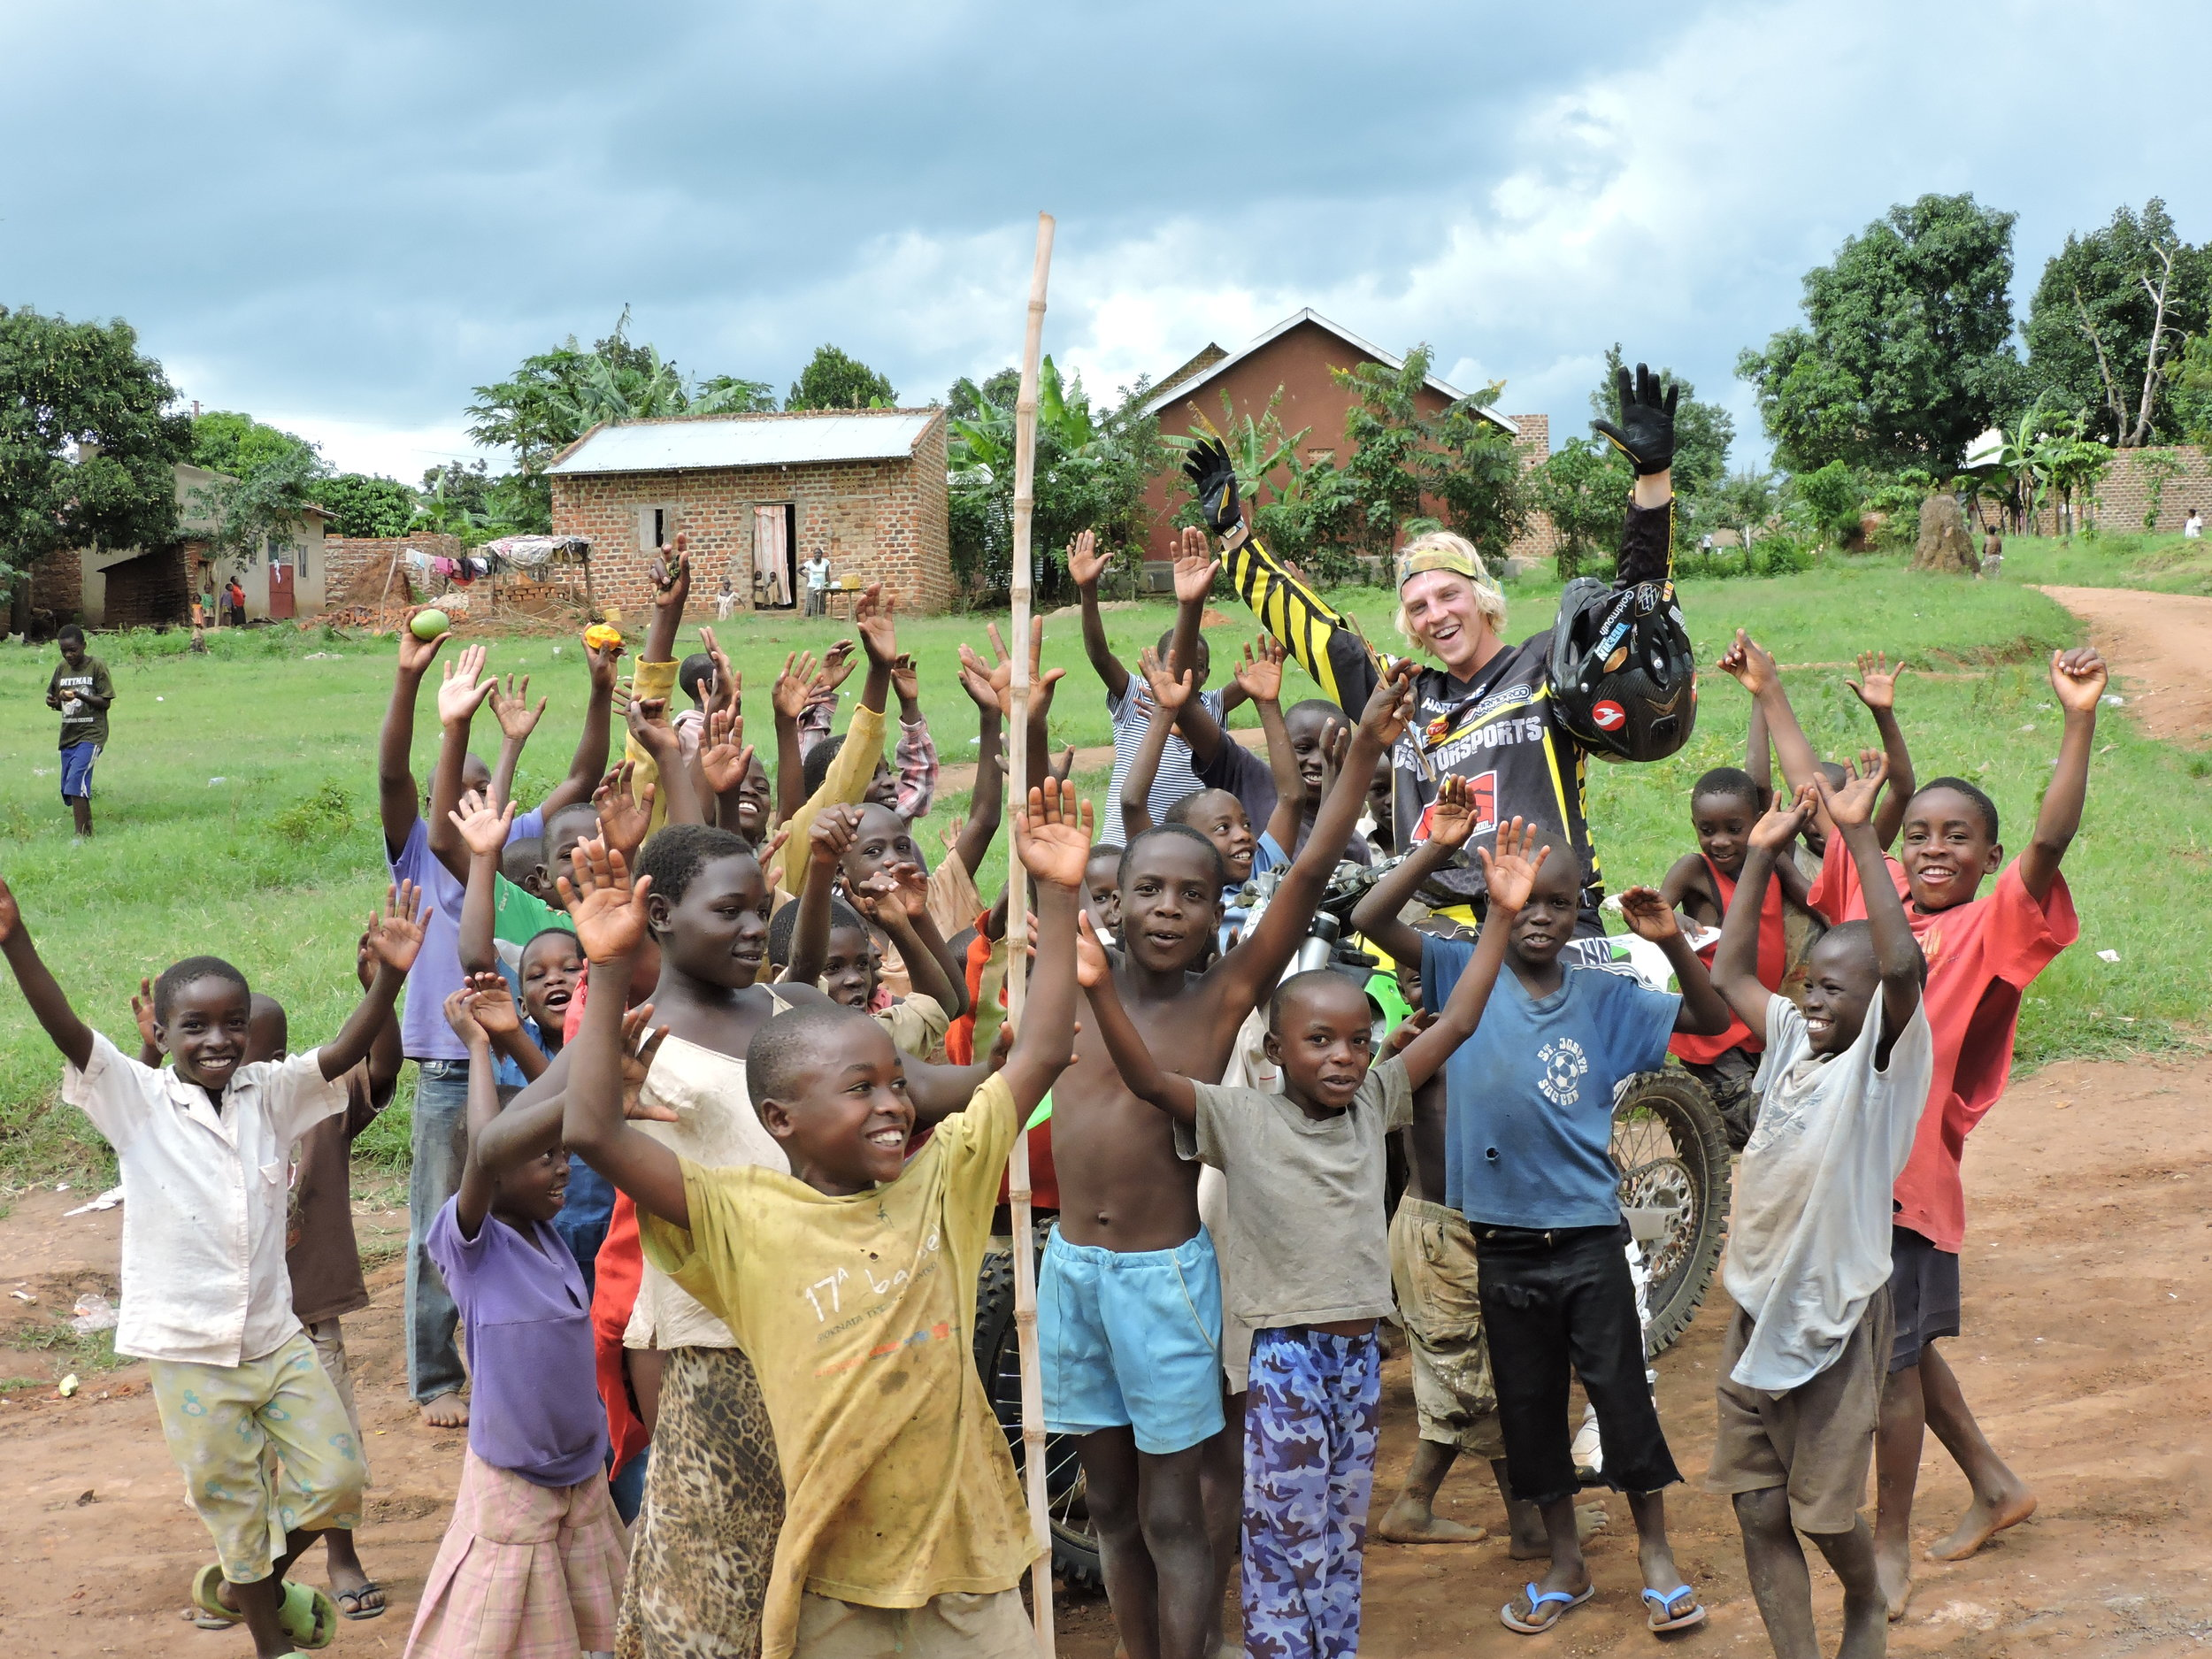 Daniel Sedlak making new friends while teaching Motocross and Enduro lessons in Uganda Africa